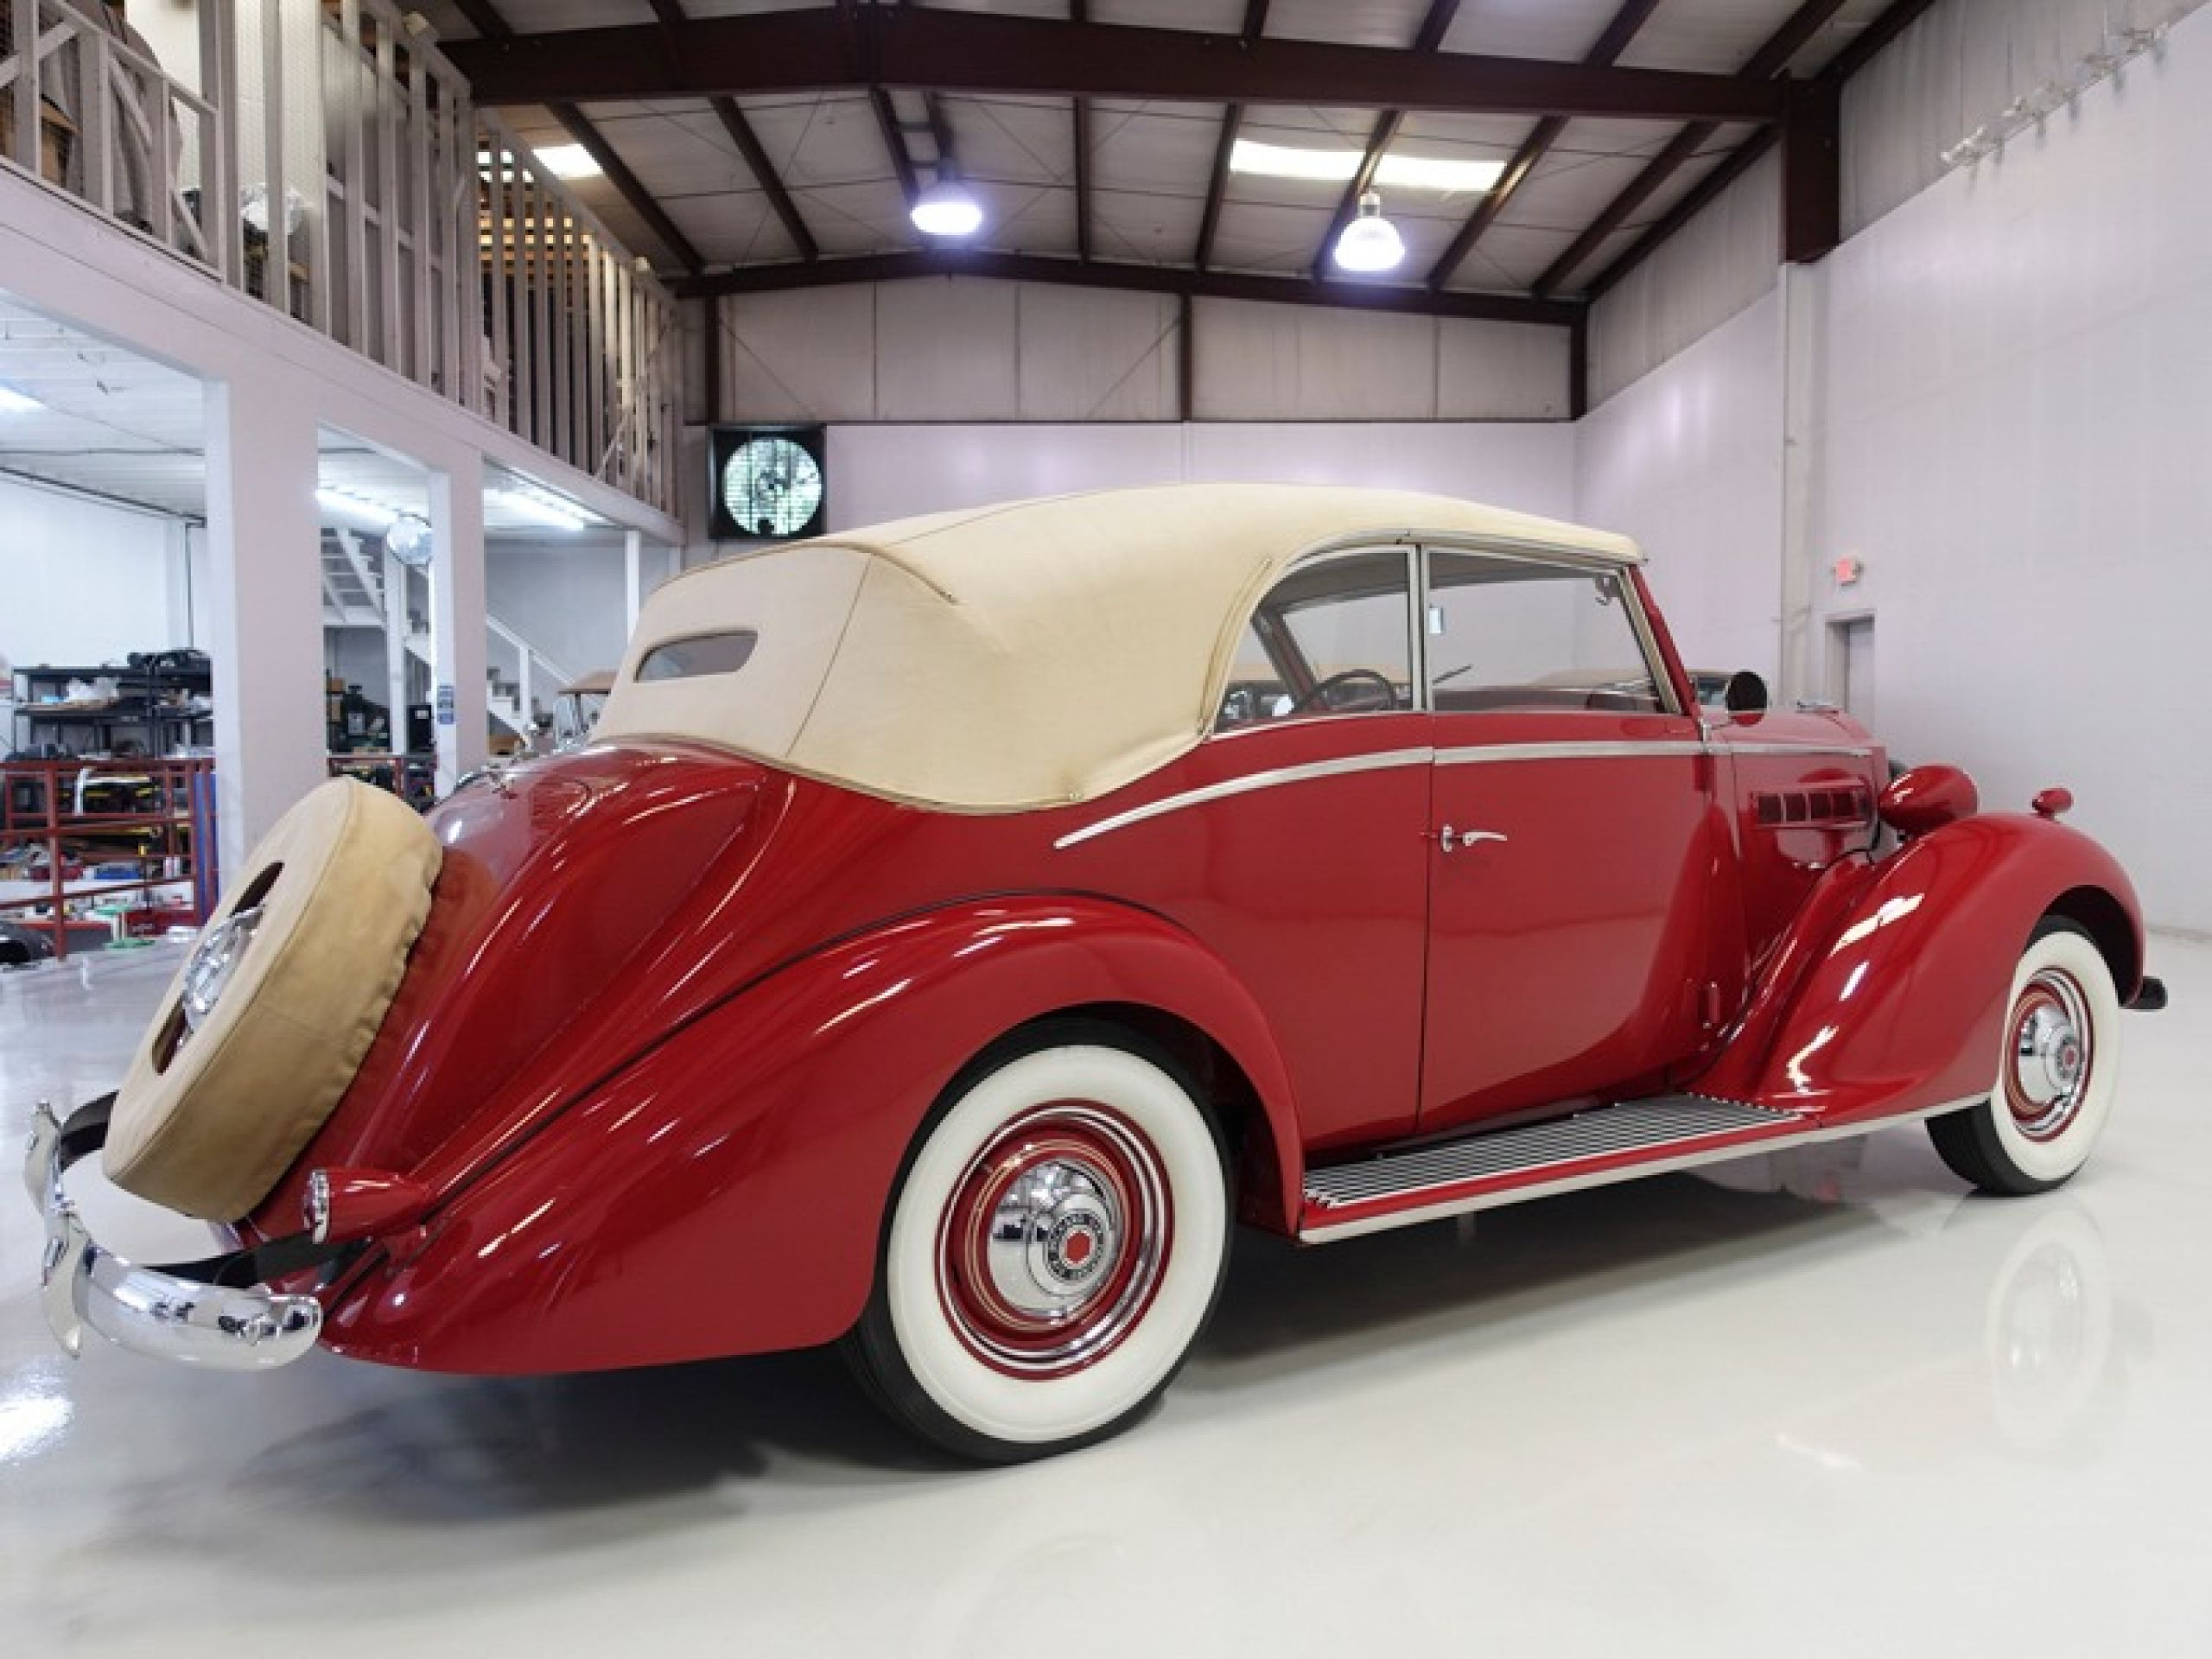 1937 Packard 115-C Coachbuilt Cabriolet by Graber